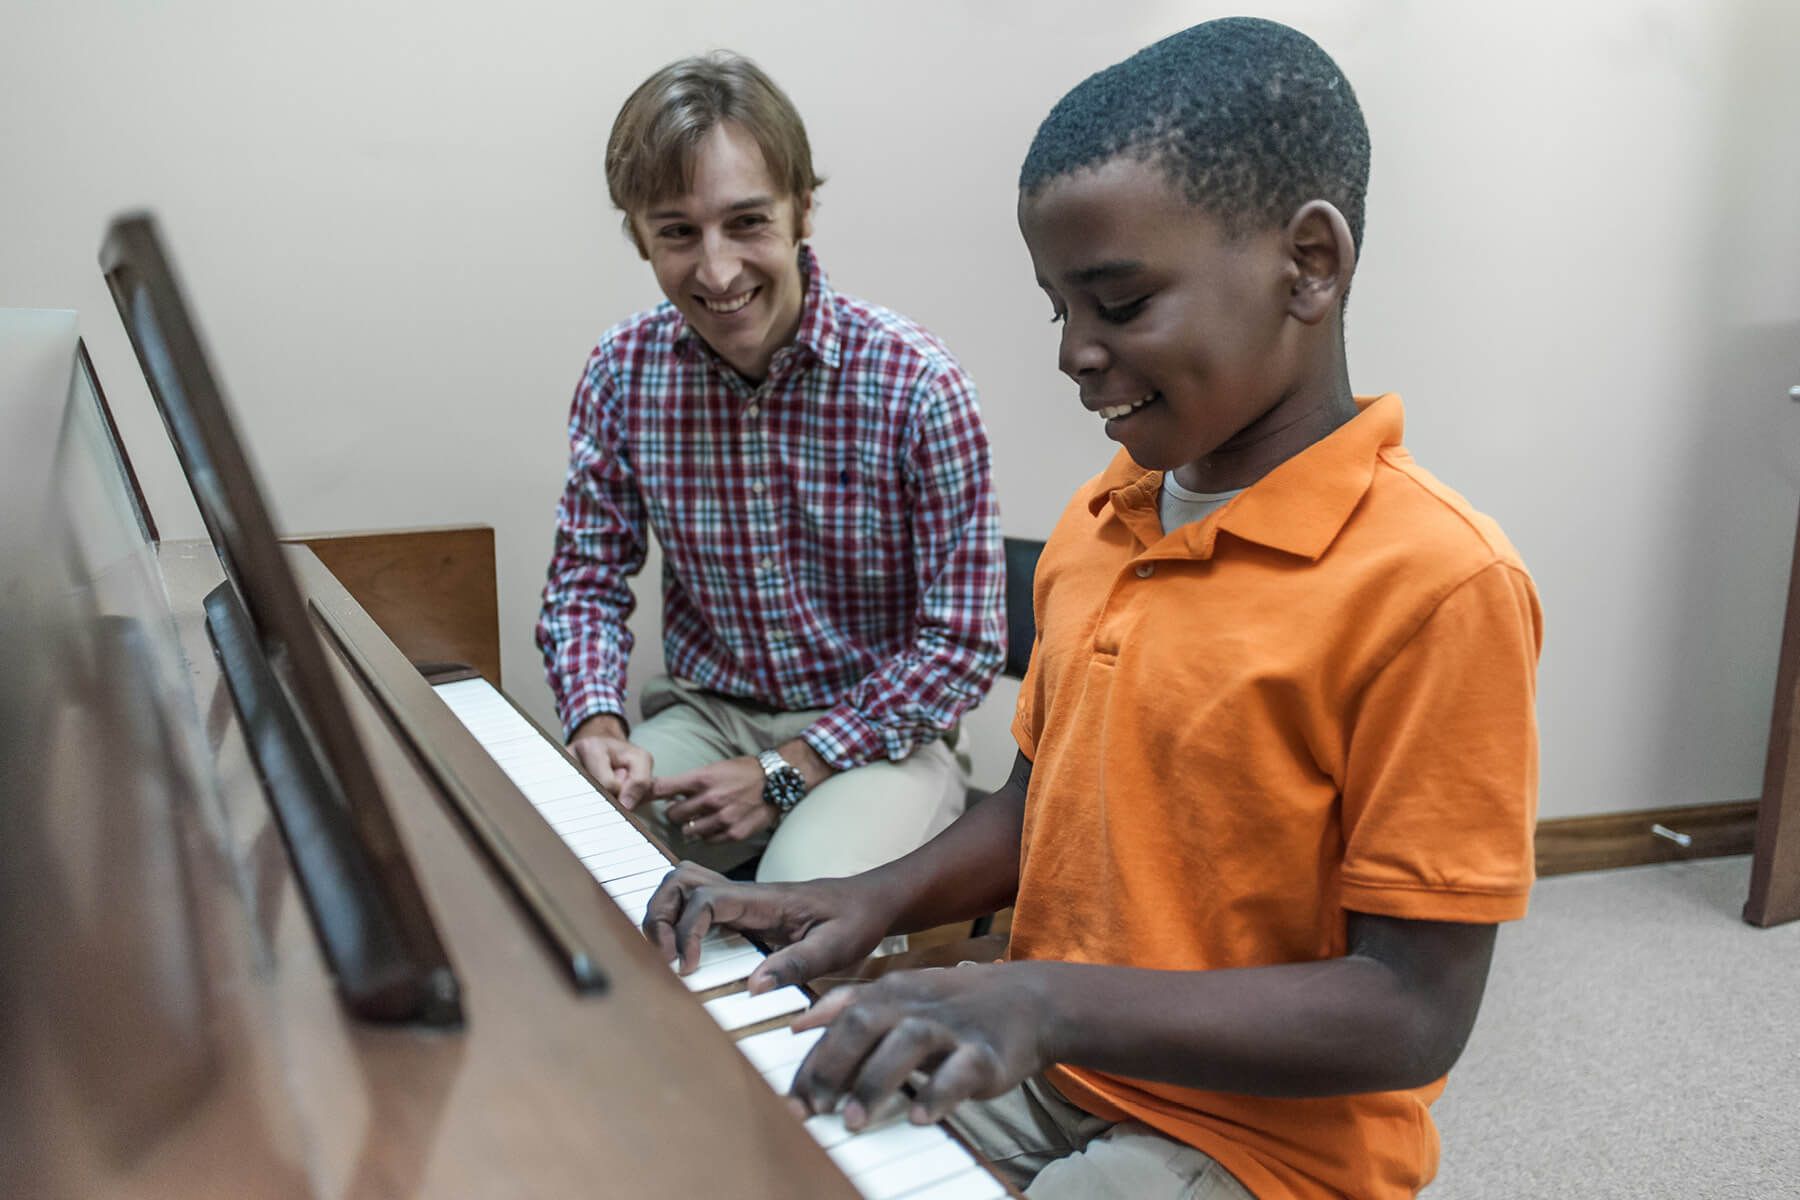 Lexington School of Music student learns piano